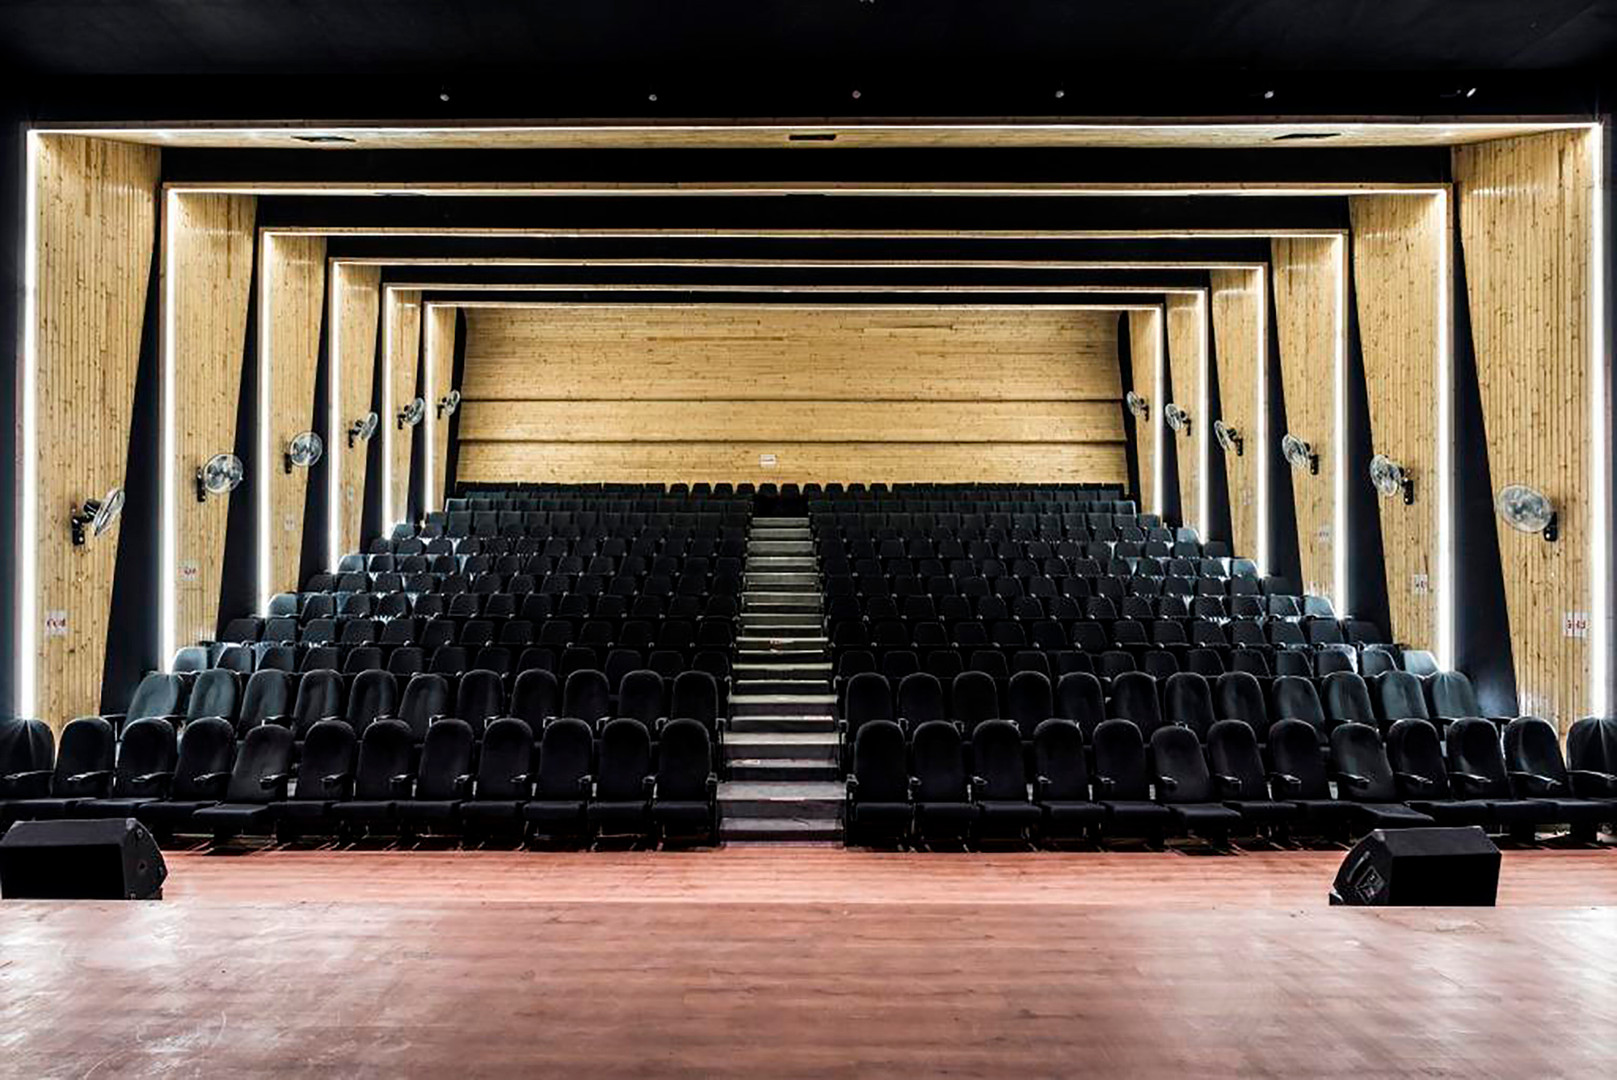 10 Seating view as seen from stage.jpg